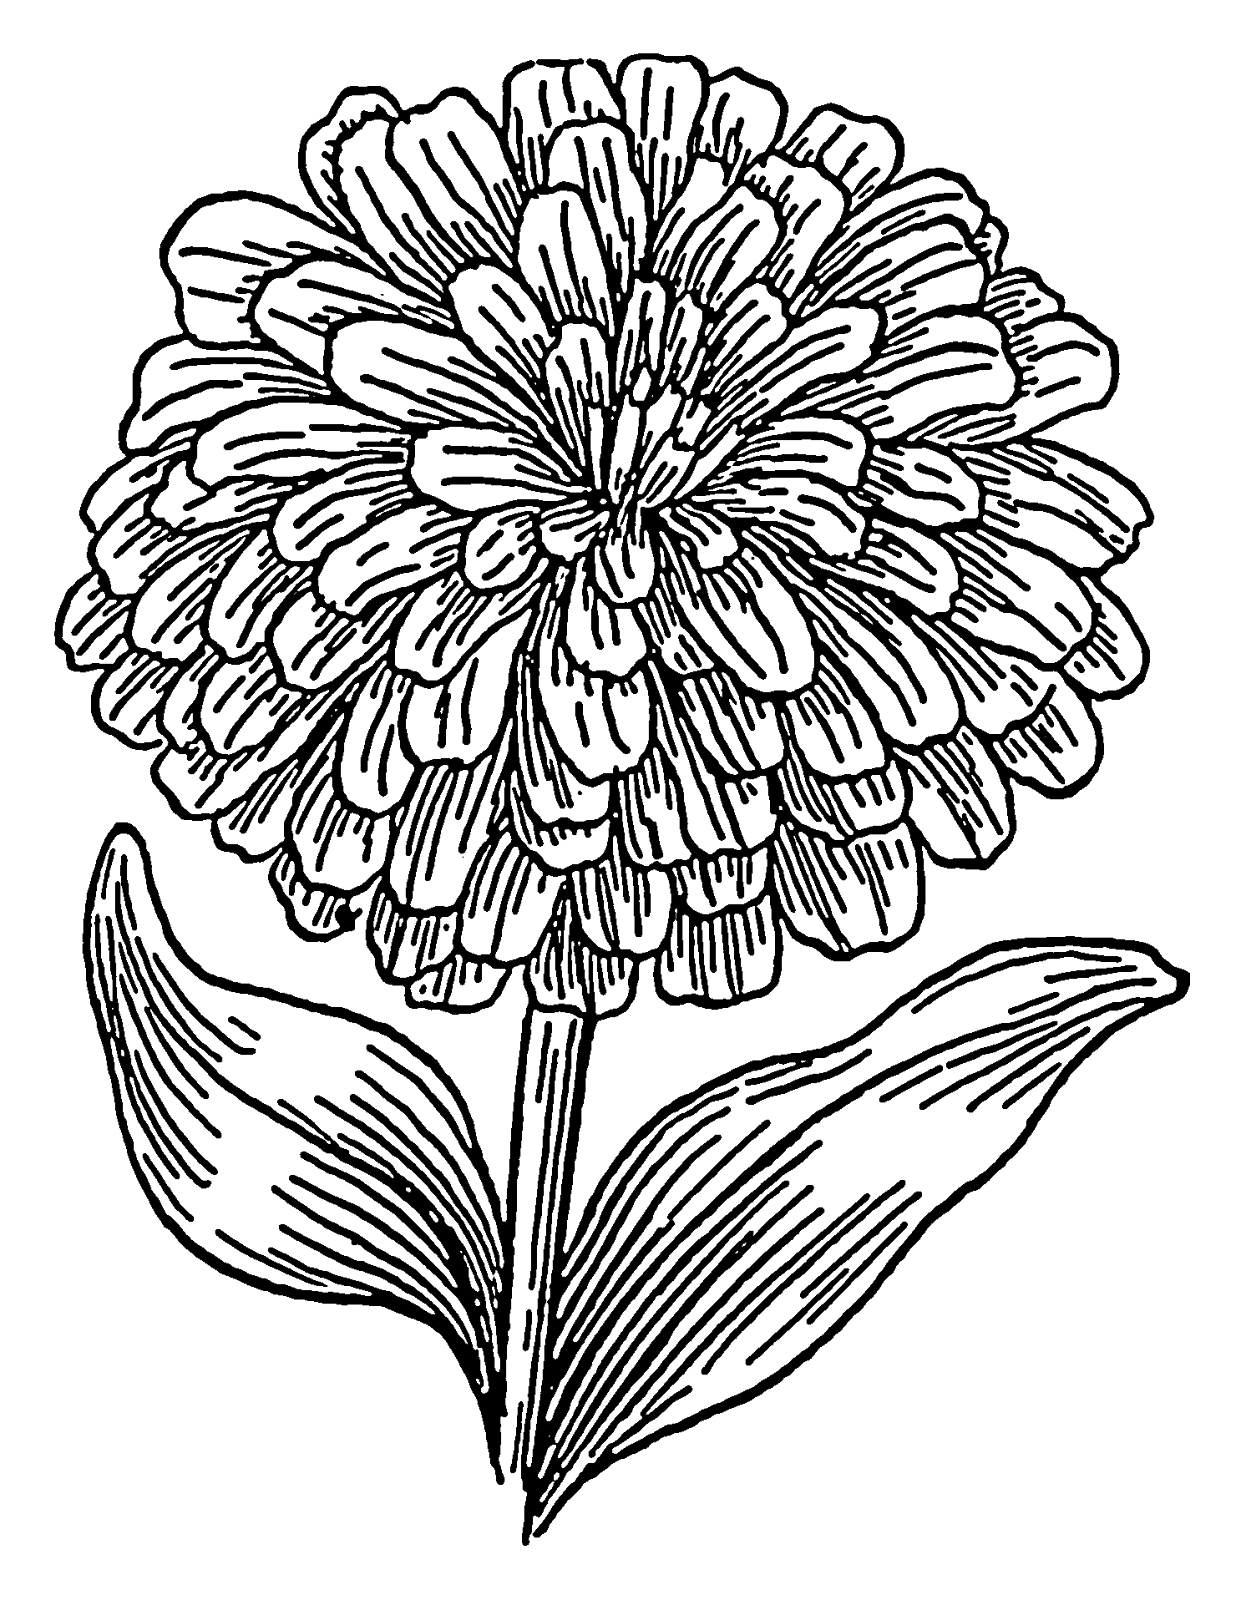 1236x1600 Marigolds Outline Tattoos Marigold, Outlines